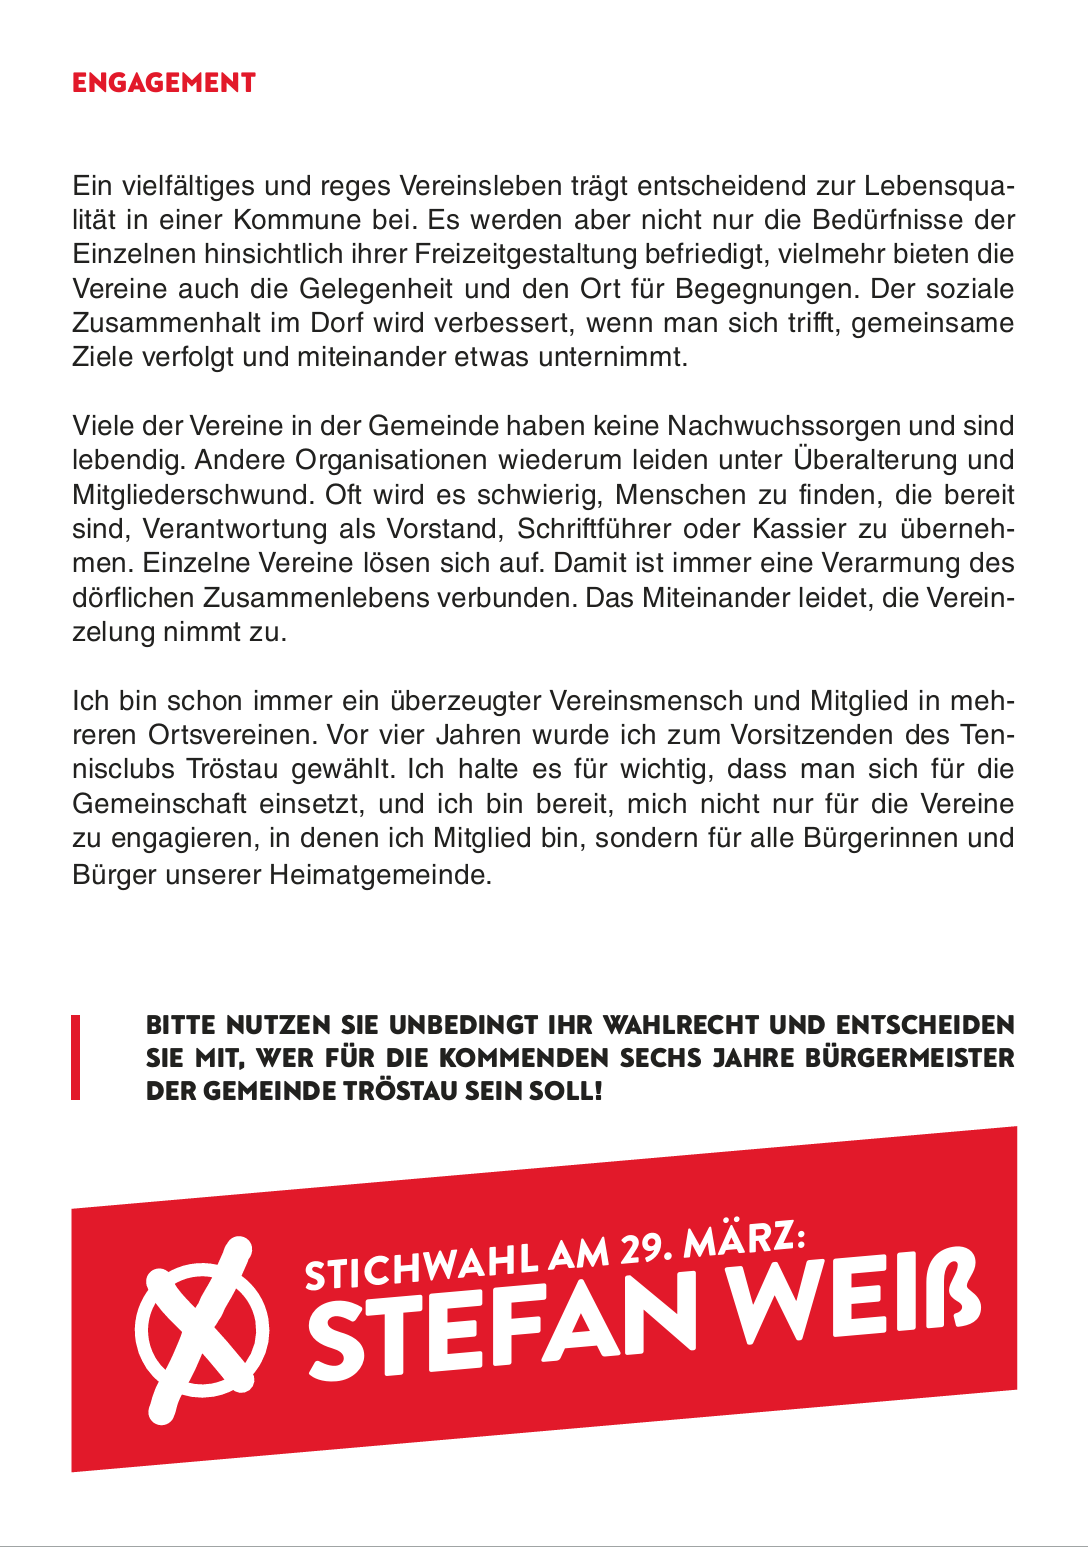 2020_Stichwahl_Flyer_Engagement